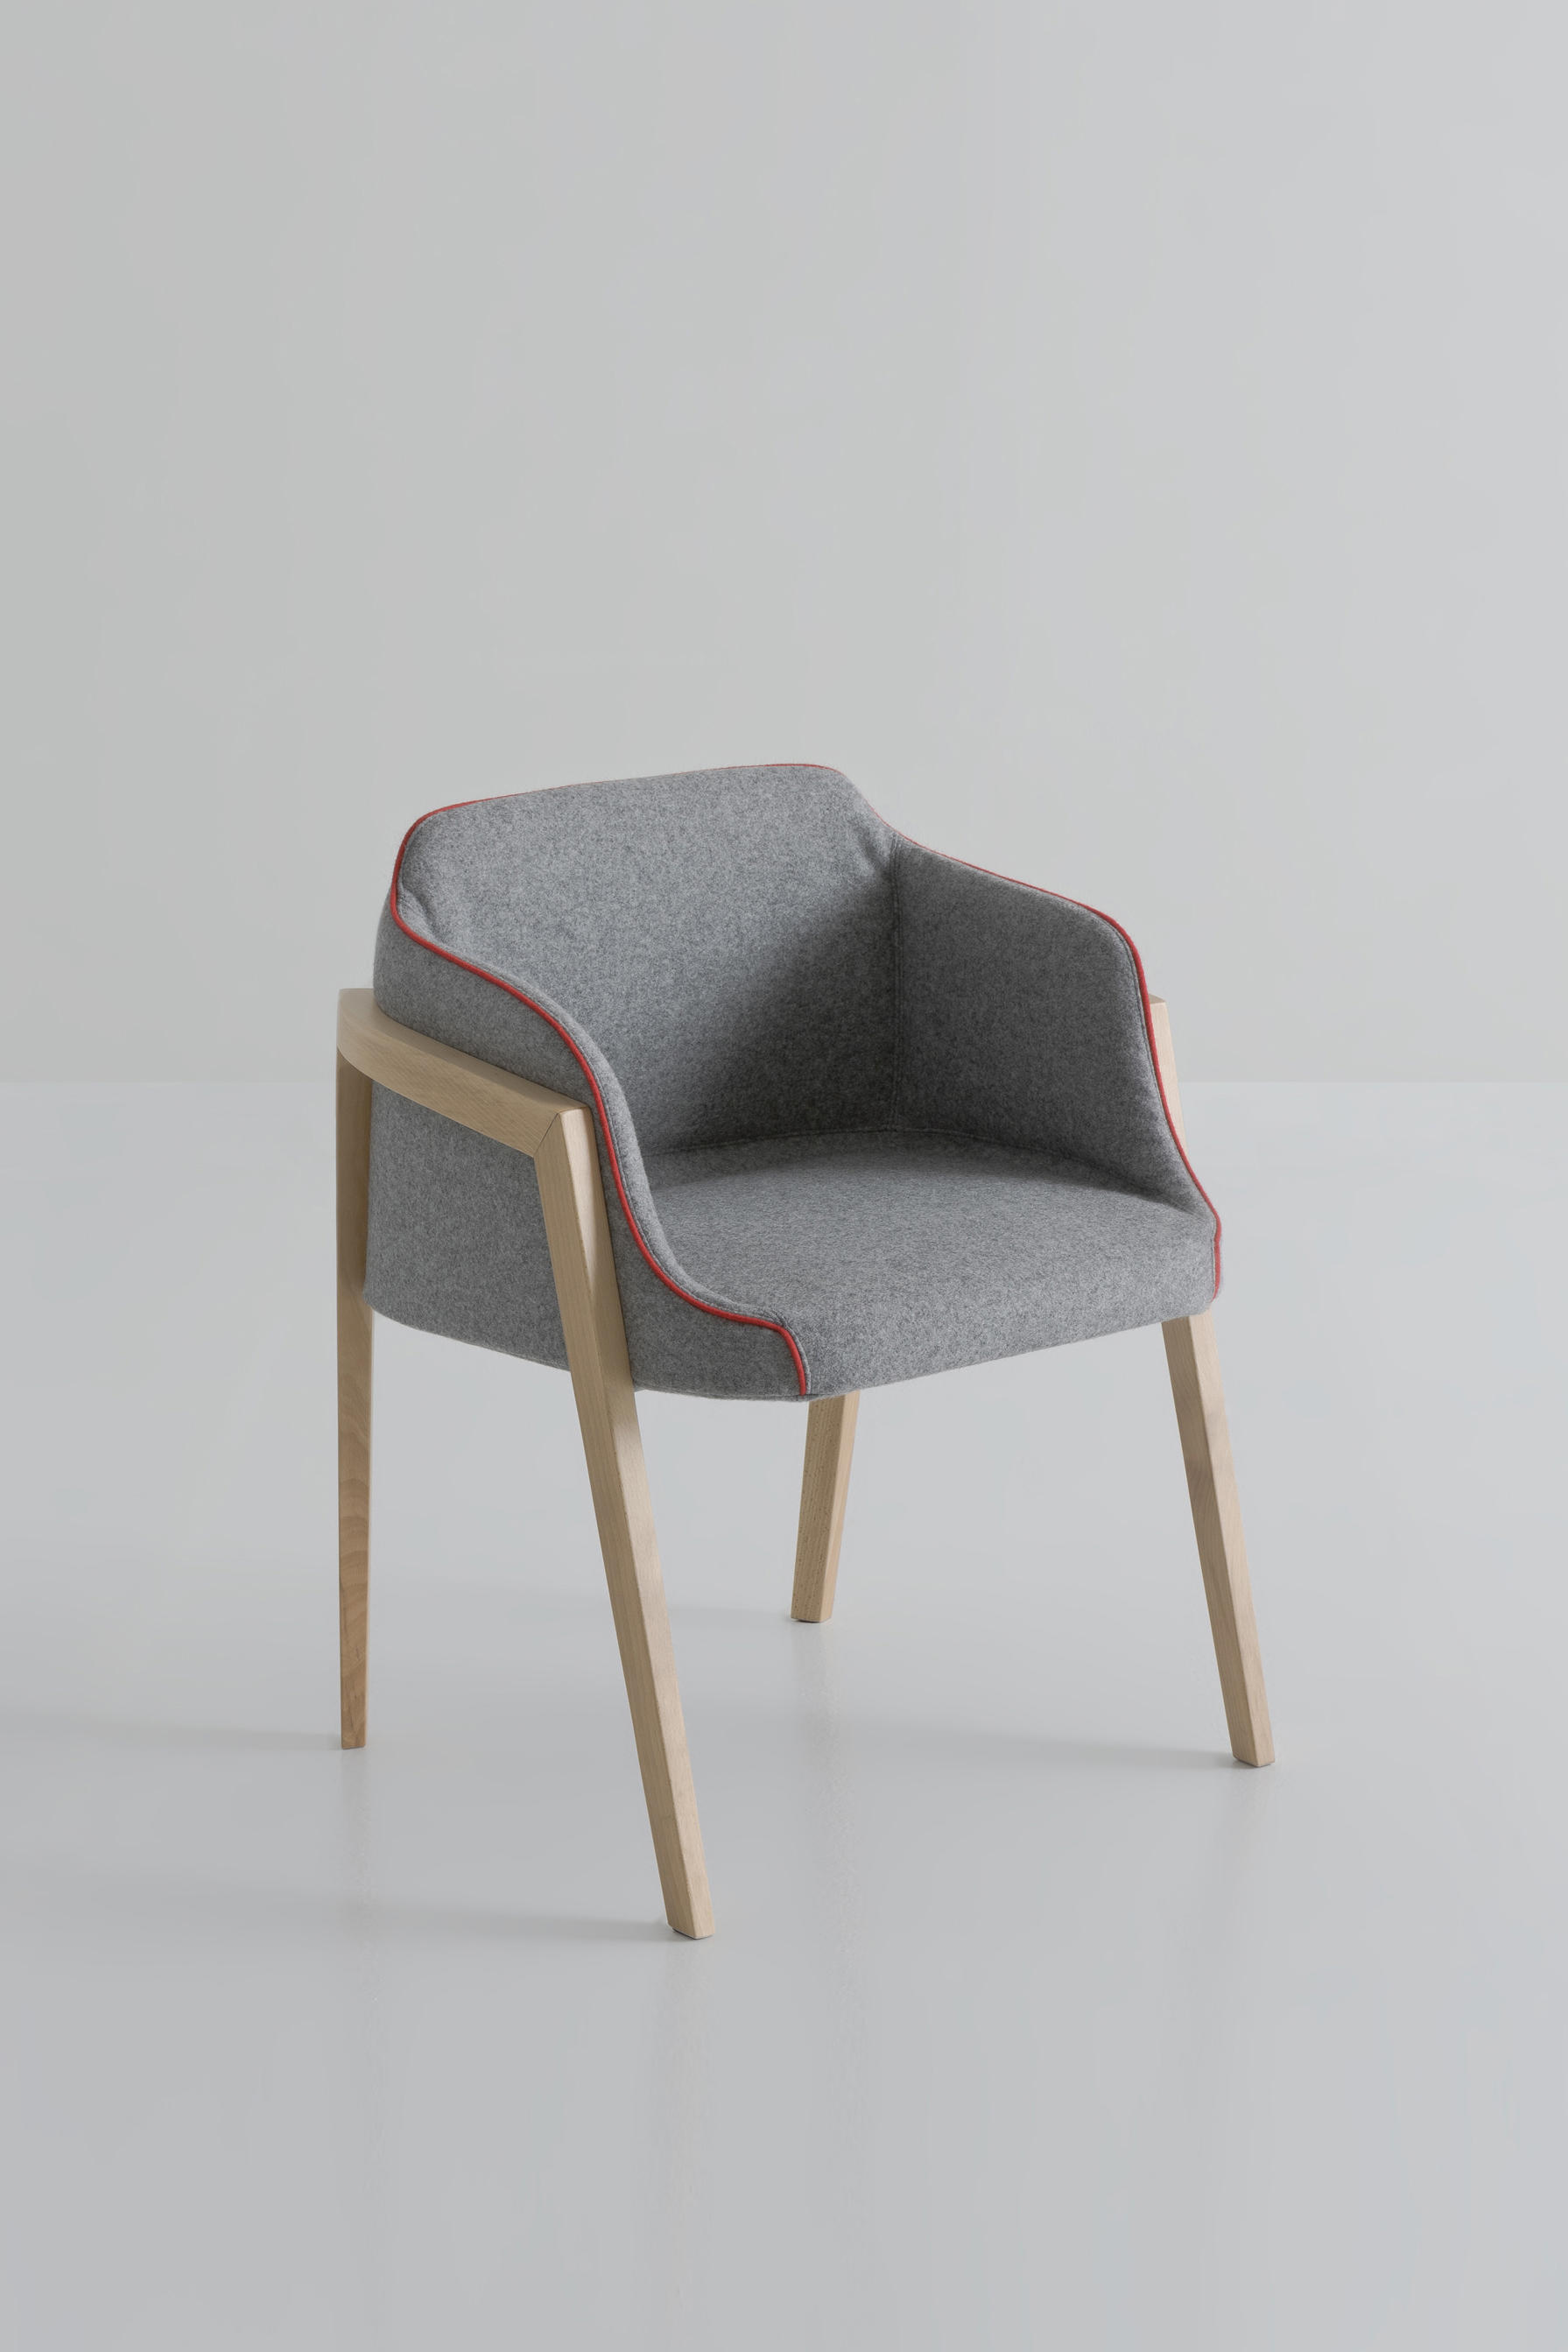 Chevalet Armchairs From Gaber Architonic